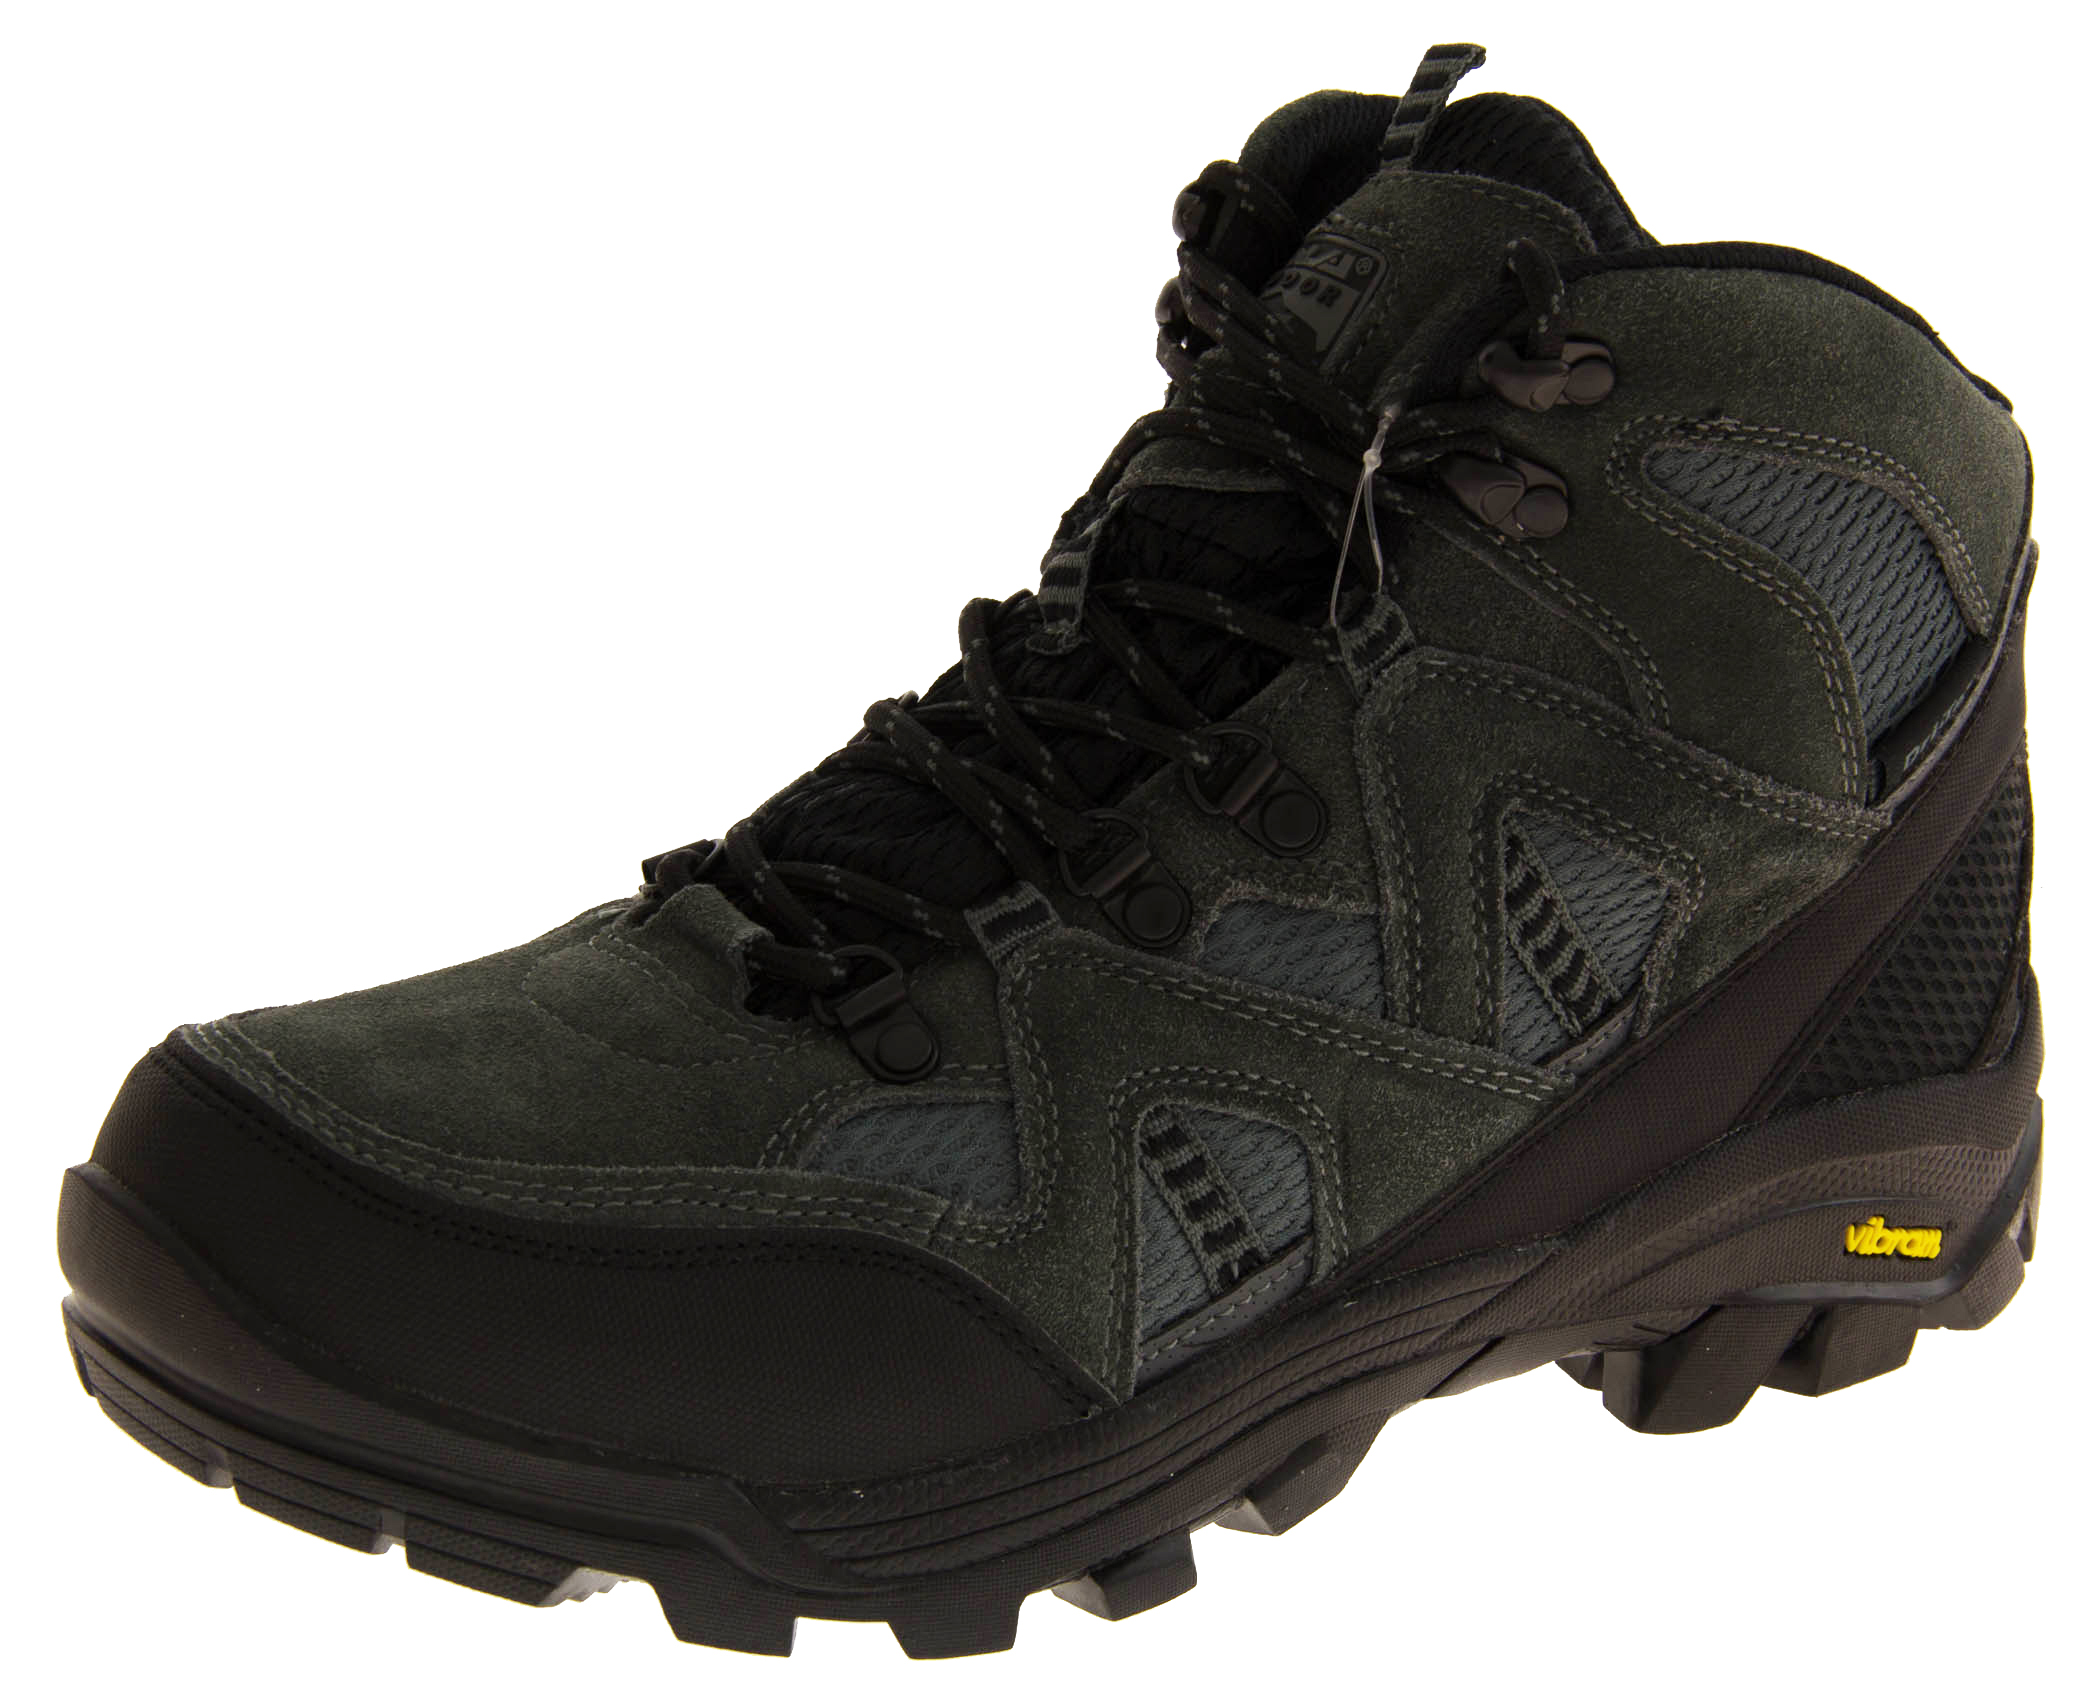 mens gola vibram leather walking boots sturdy outdoor trek